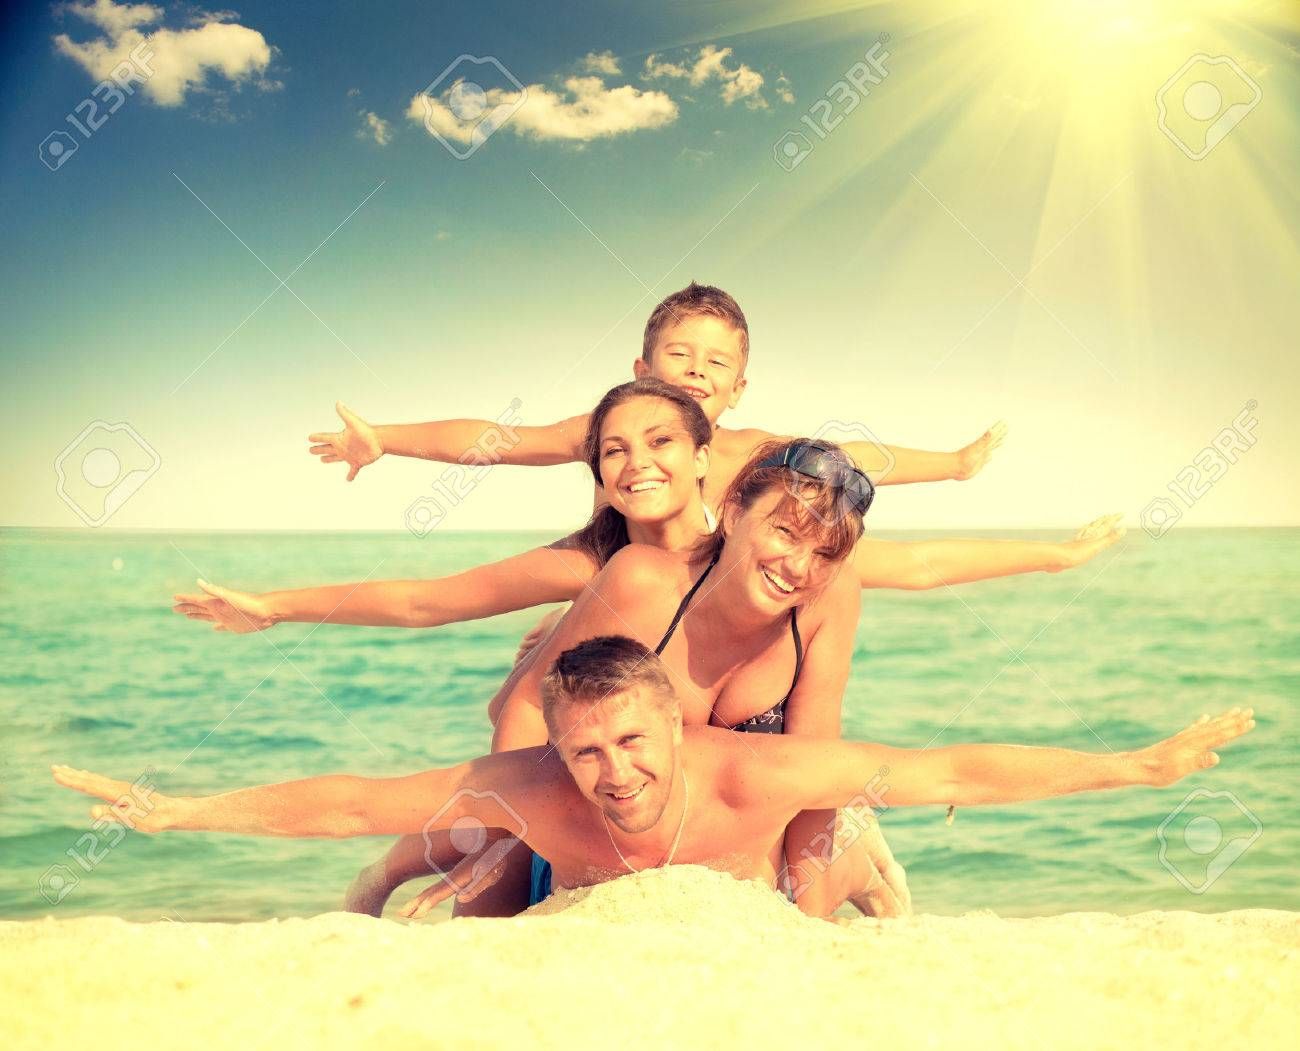 Family Beach Pictures Family Beach Fun Stock Photos Pictures Royalty Free Family